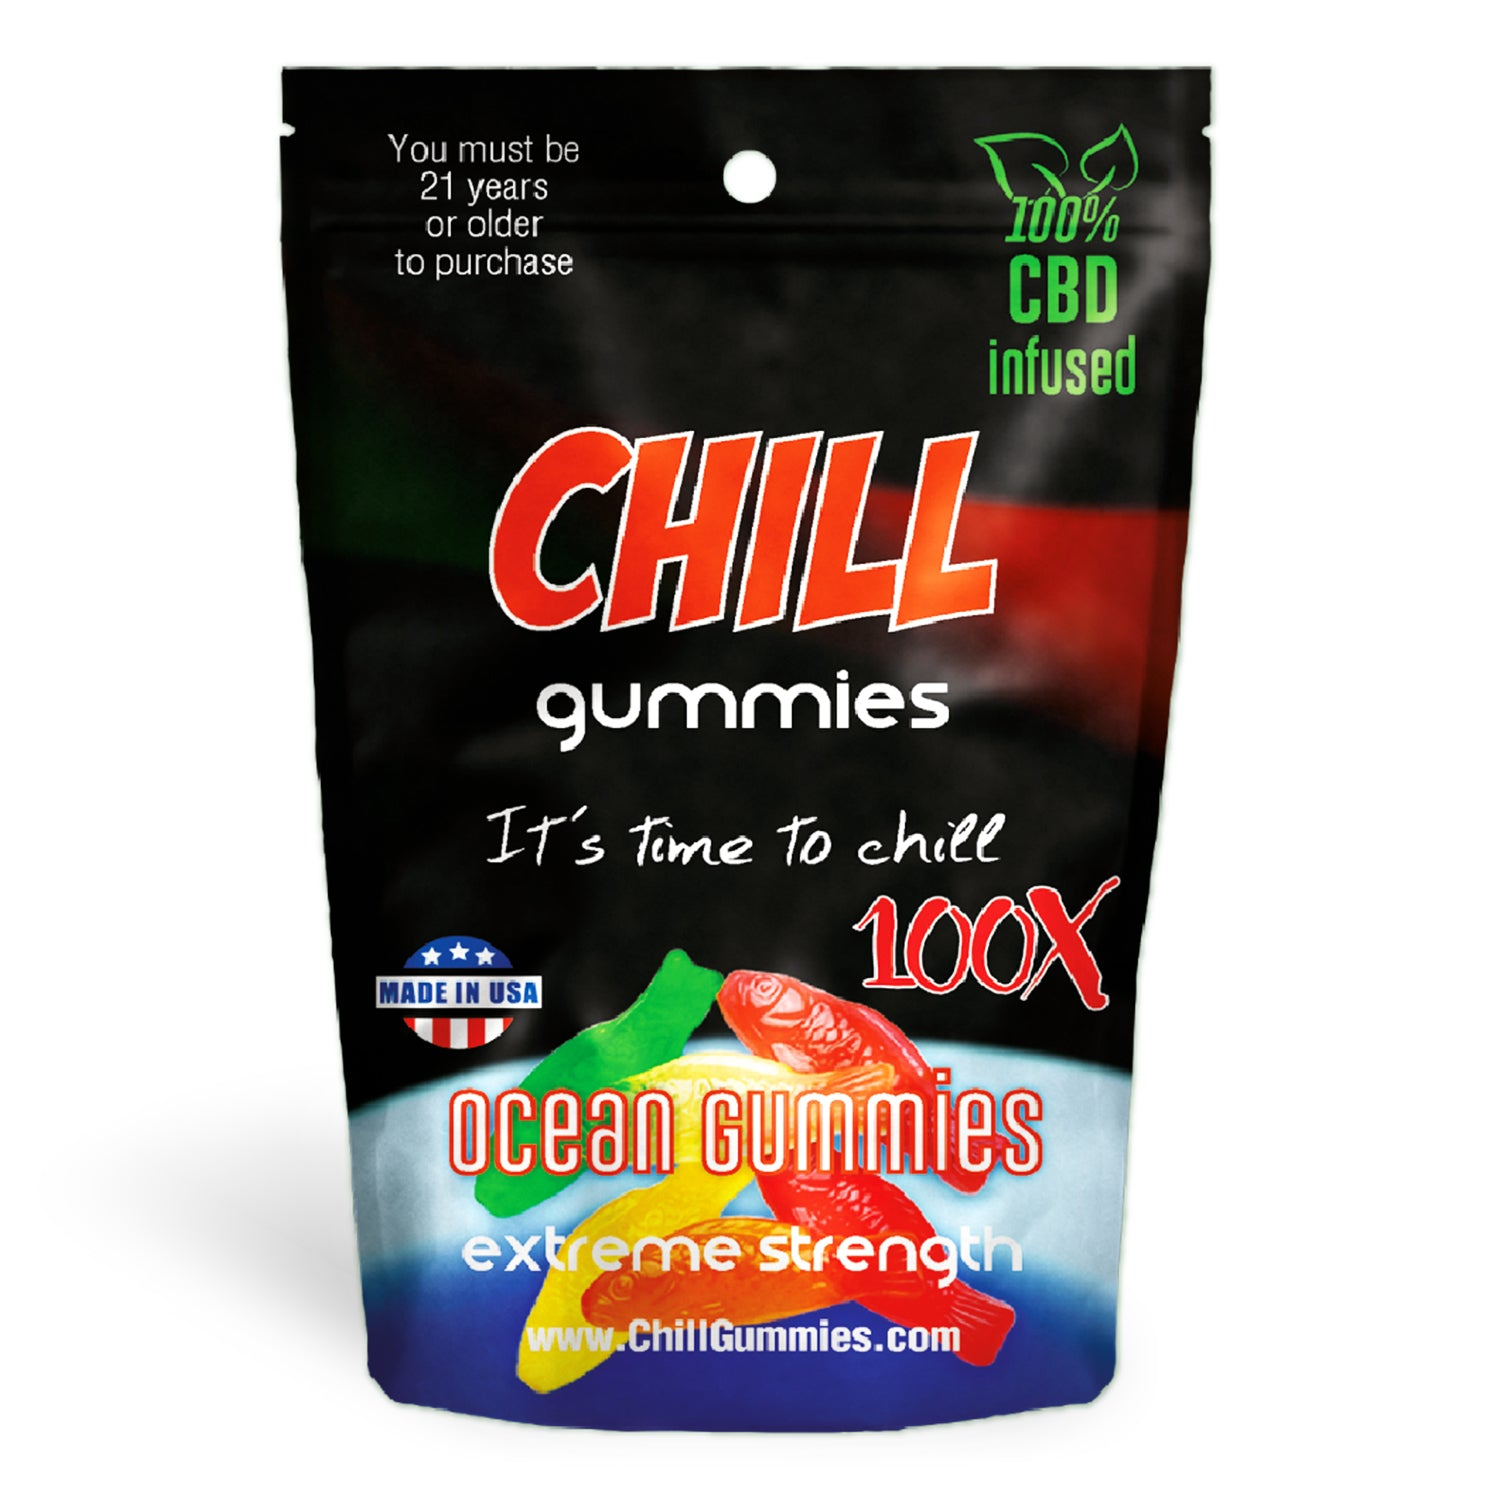 Chill Gummies - CBD Infused Ocean Gummies [Edible Candy]